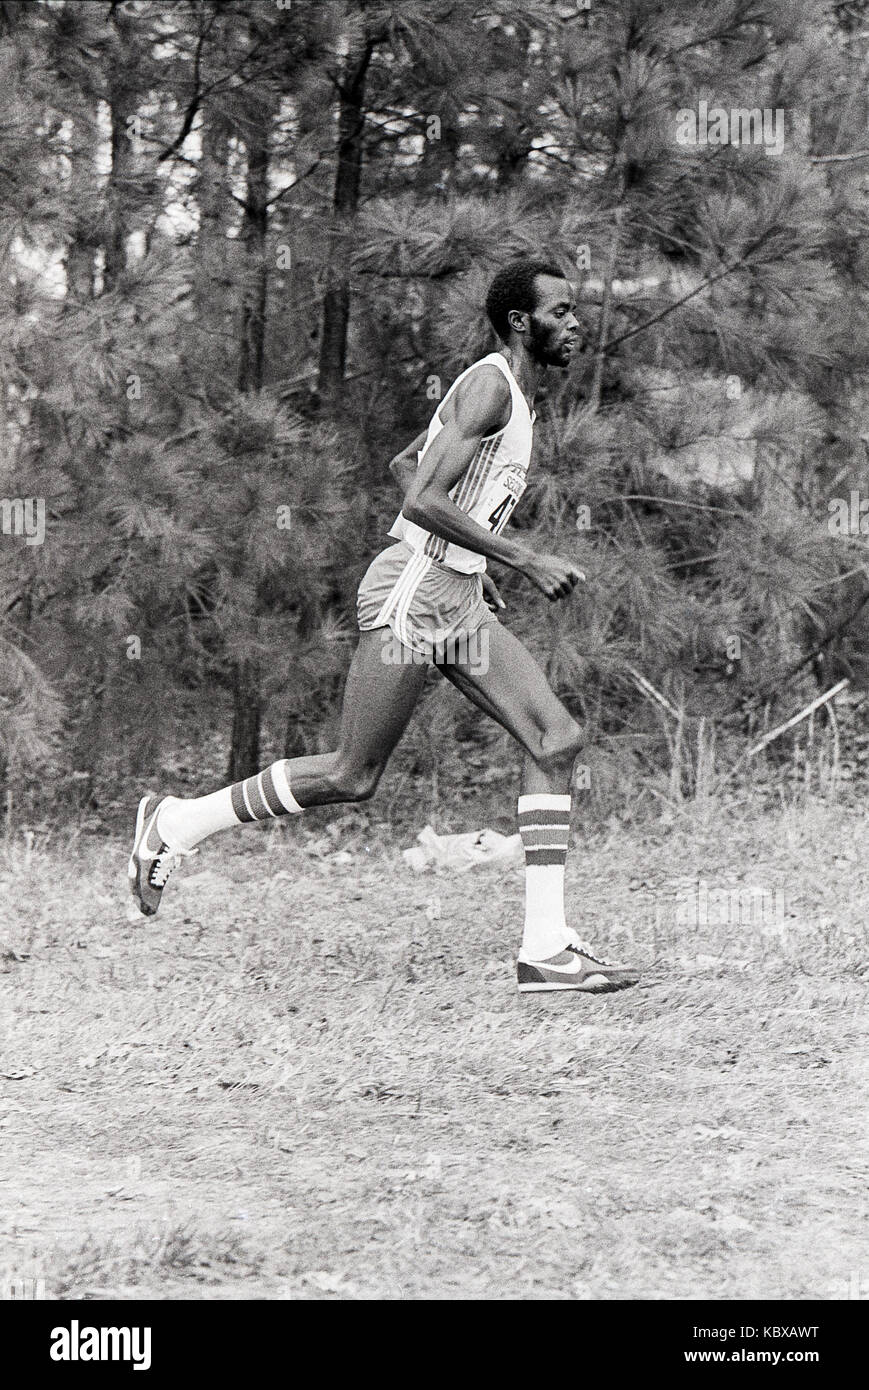 Läufer in der 1979 aau Cross Country Meisterschaften konkurrieren. Stockbild